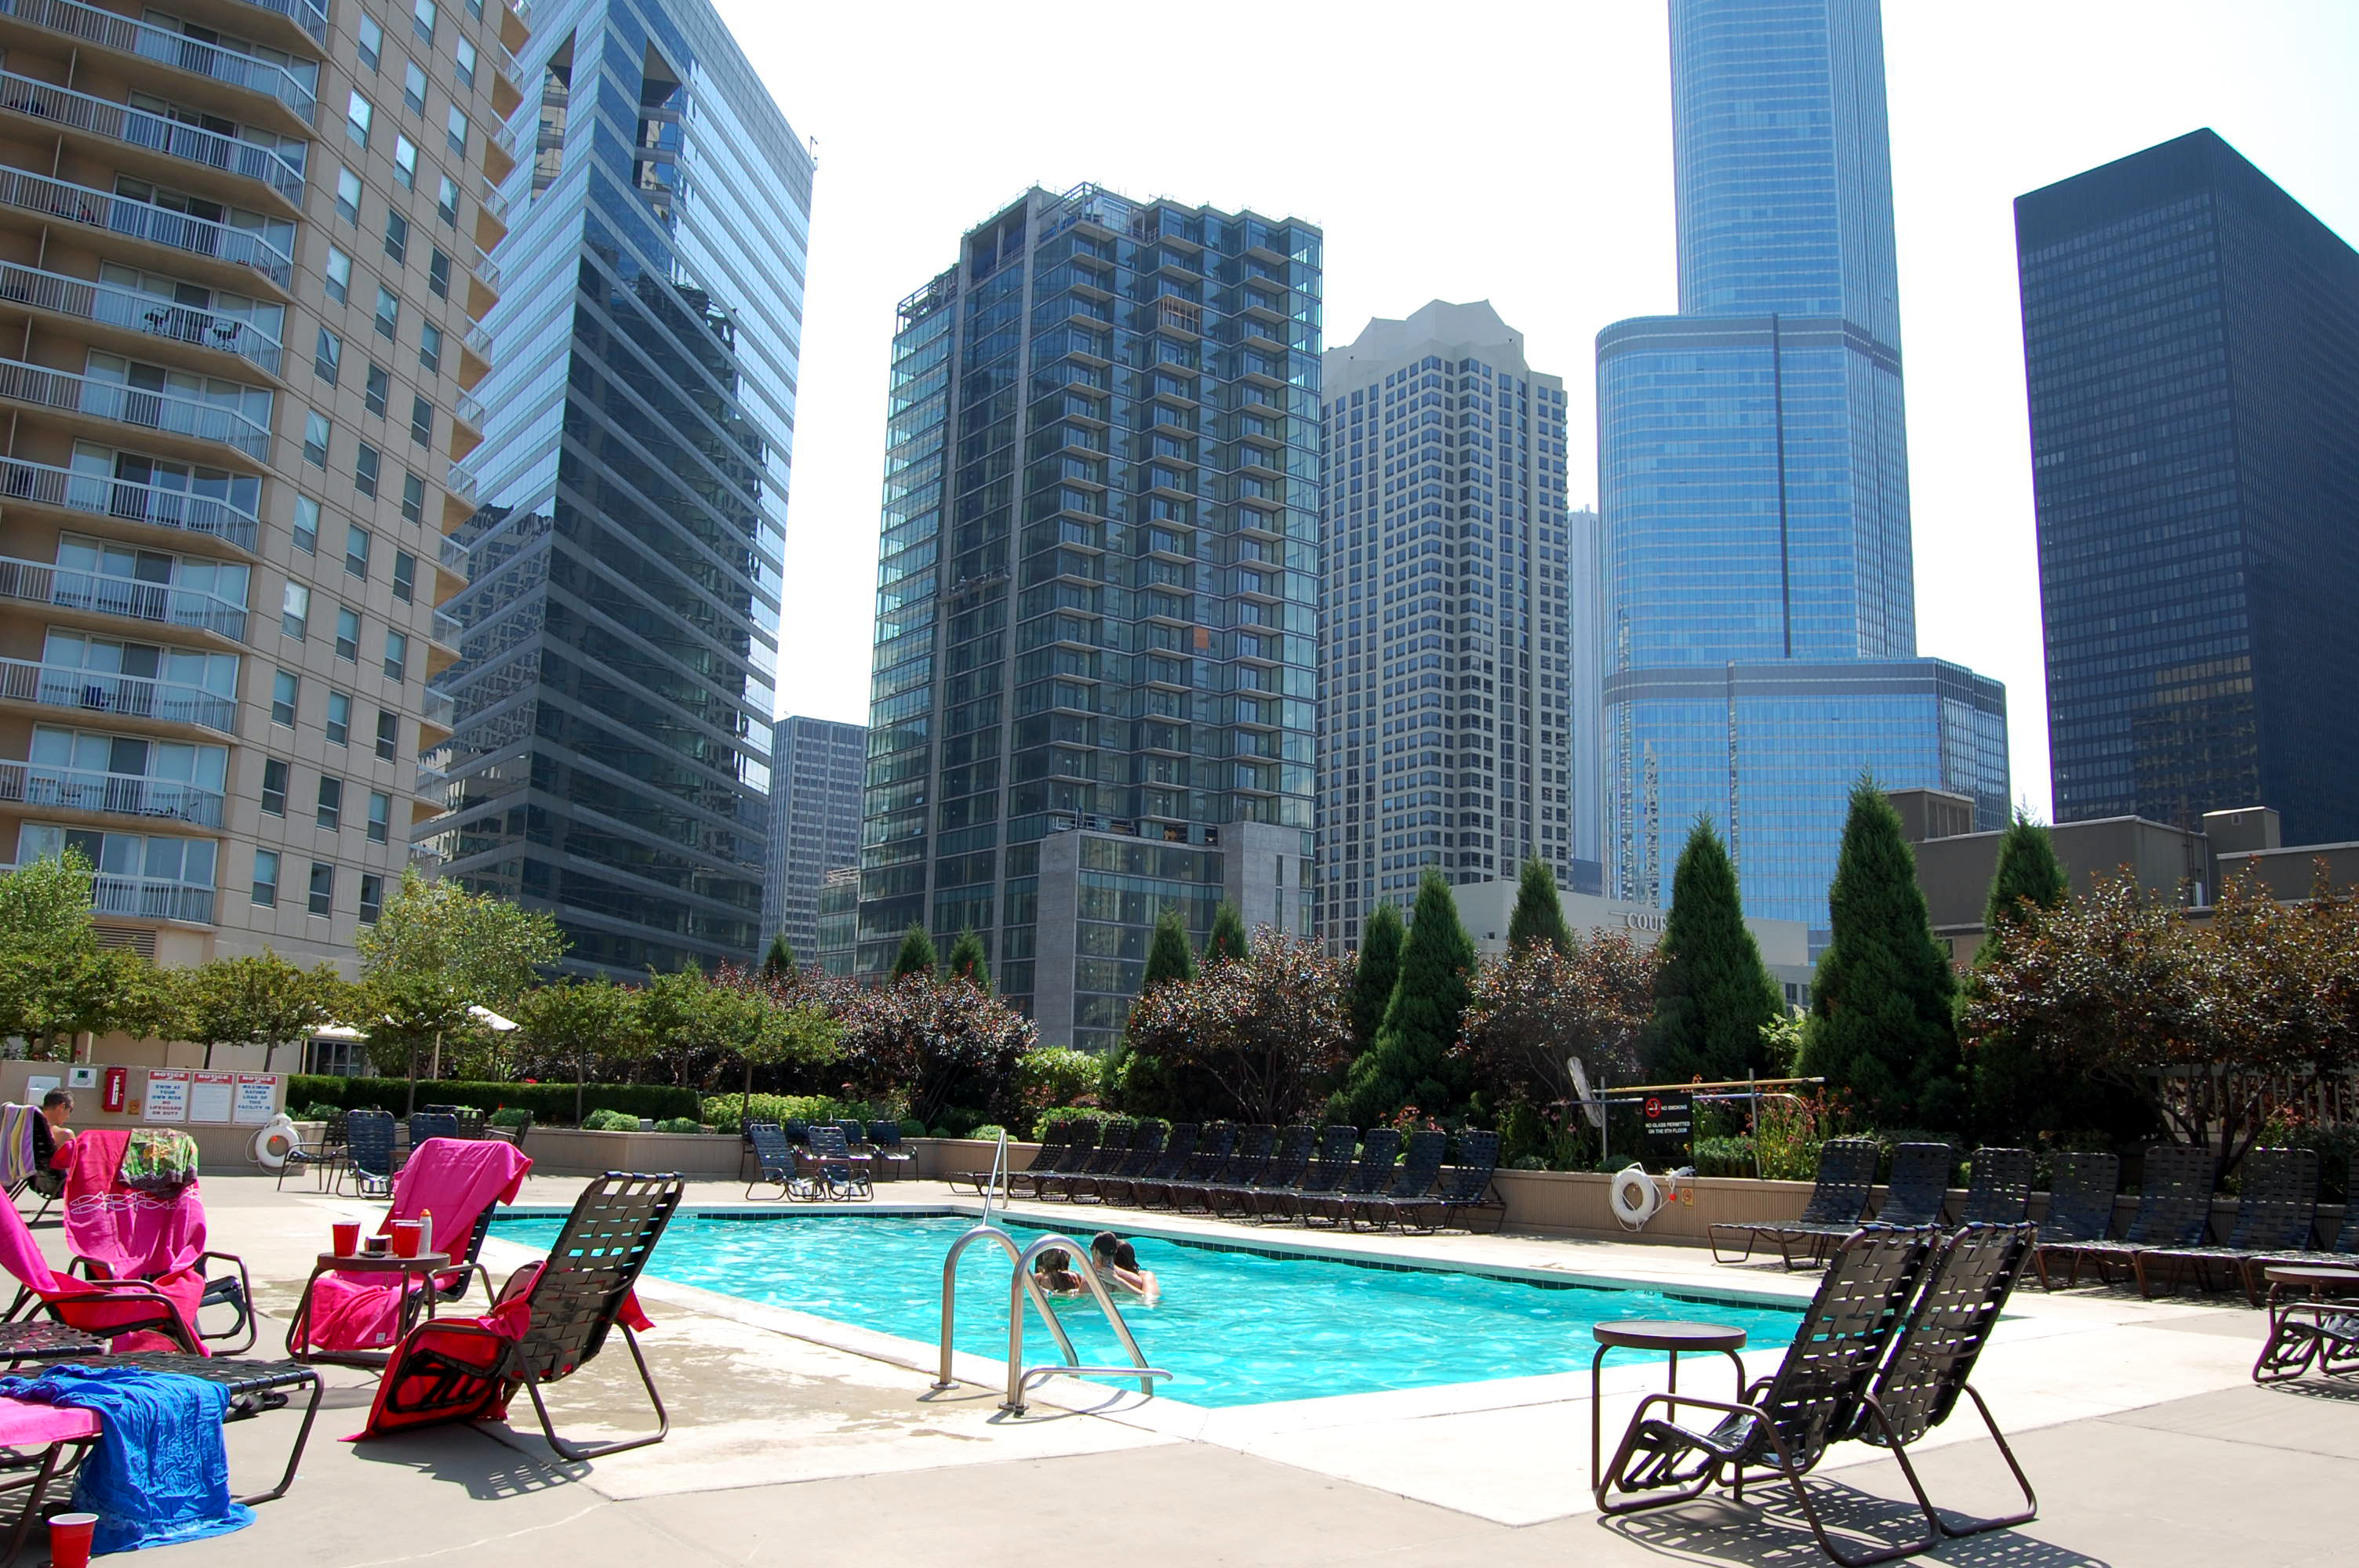 Grand Plaza's pool and common amenities